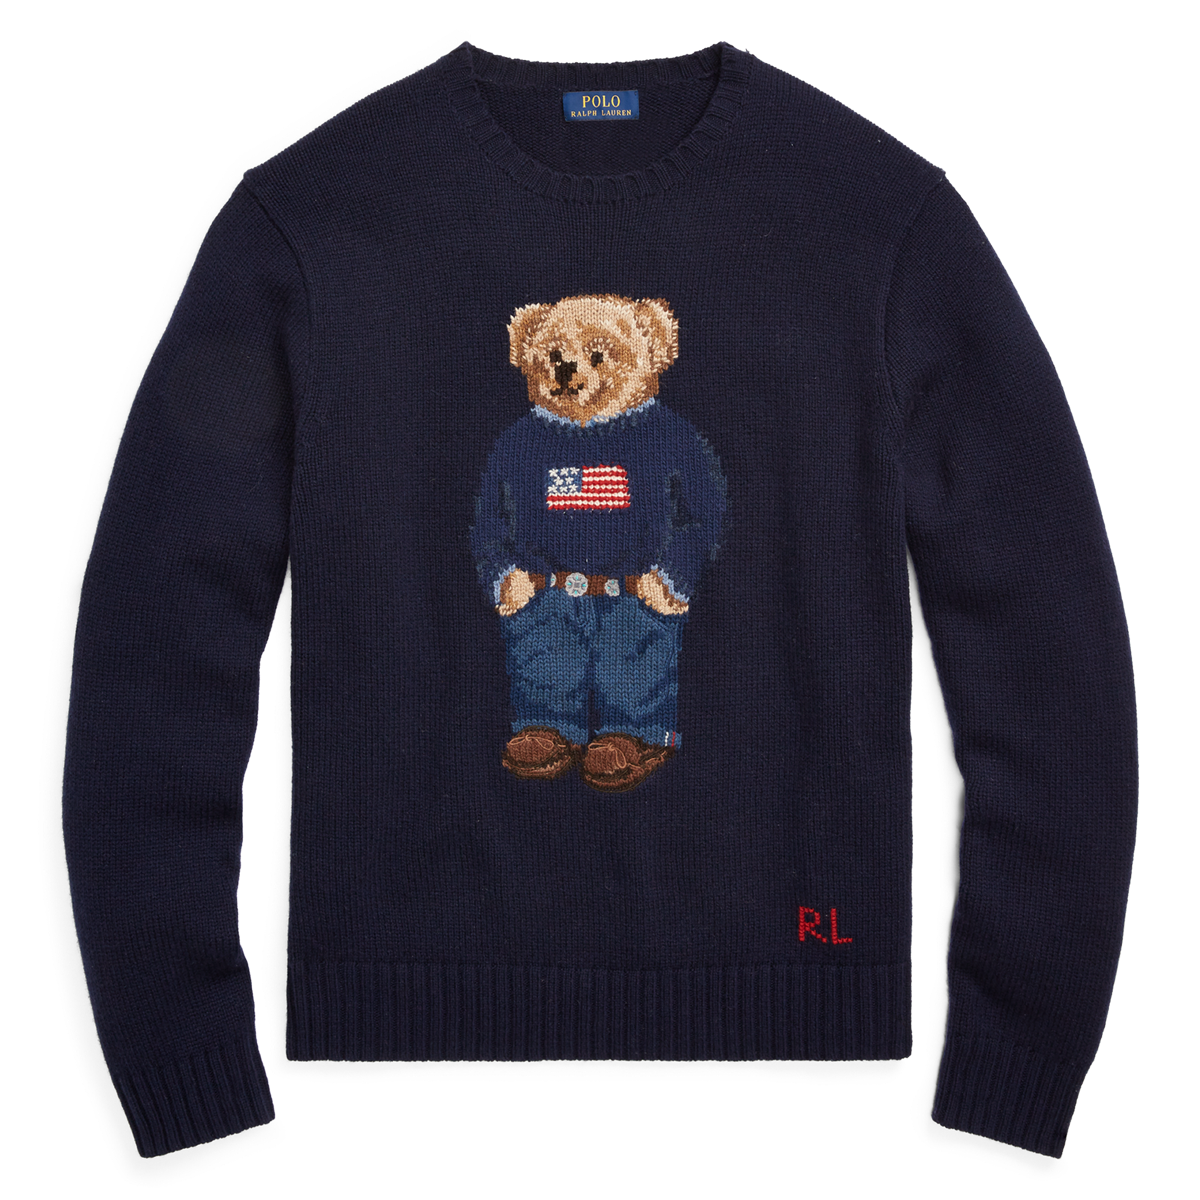 e671a549c The Iconic Polo Bear Sweater